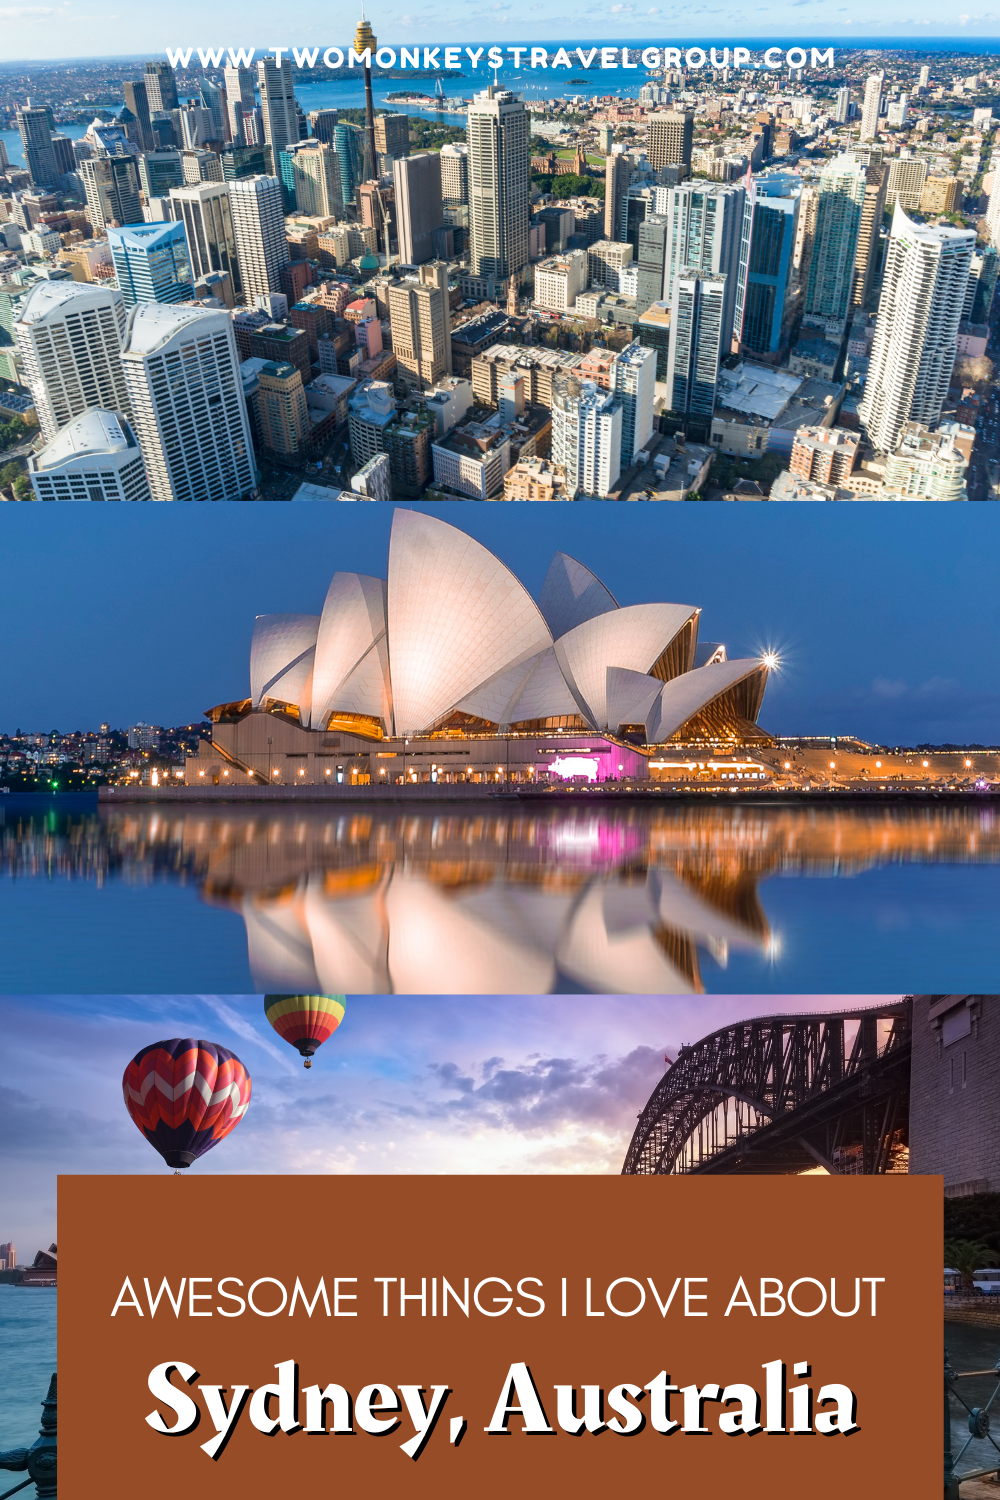 10 Awesome Things I Love About Sydney, Australia